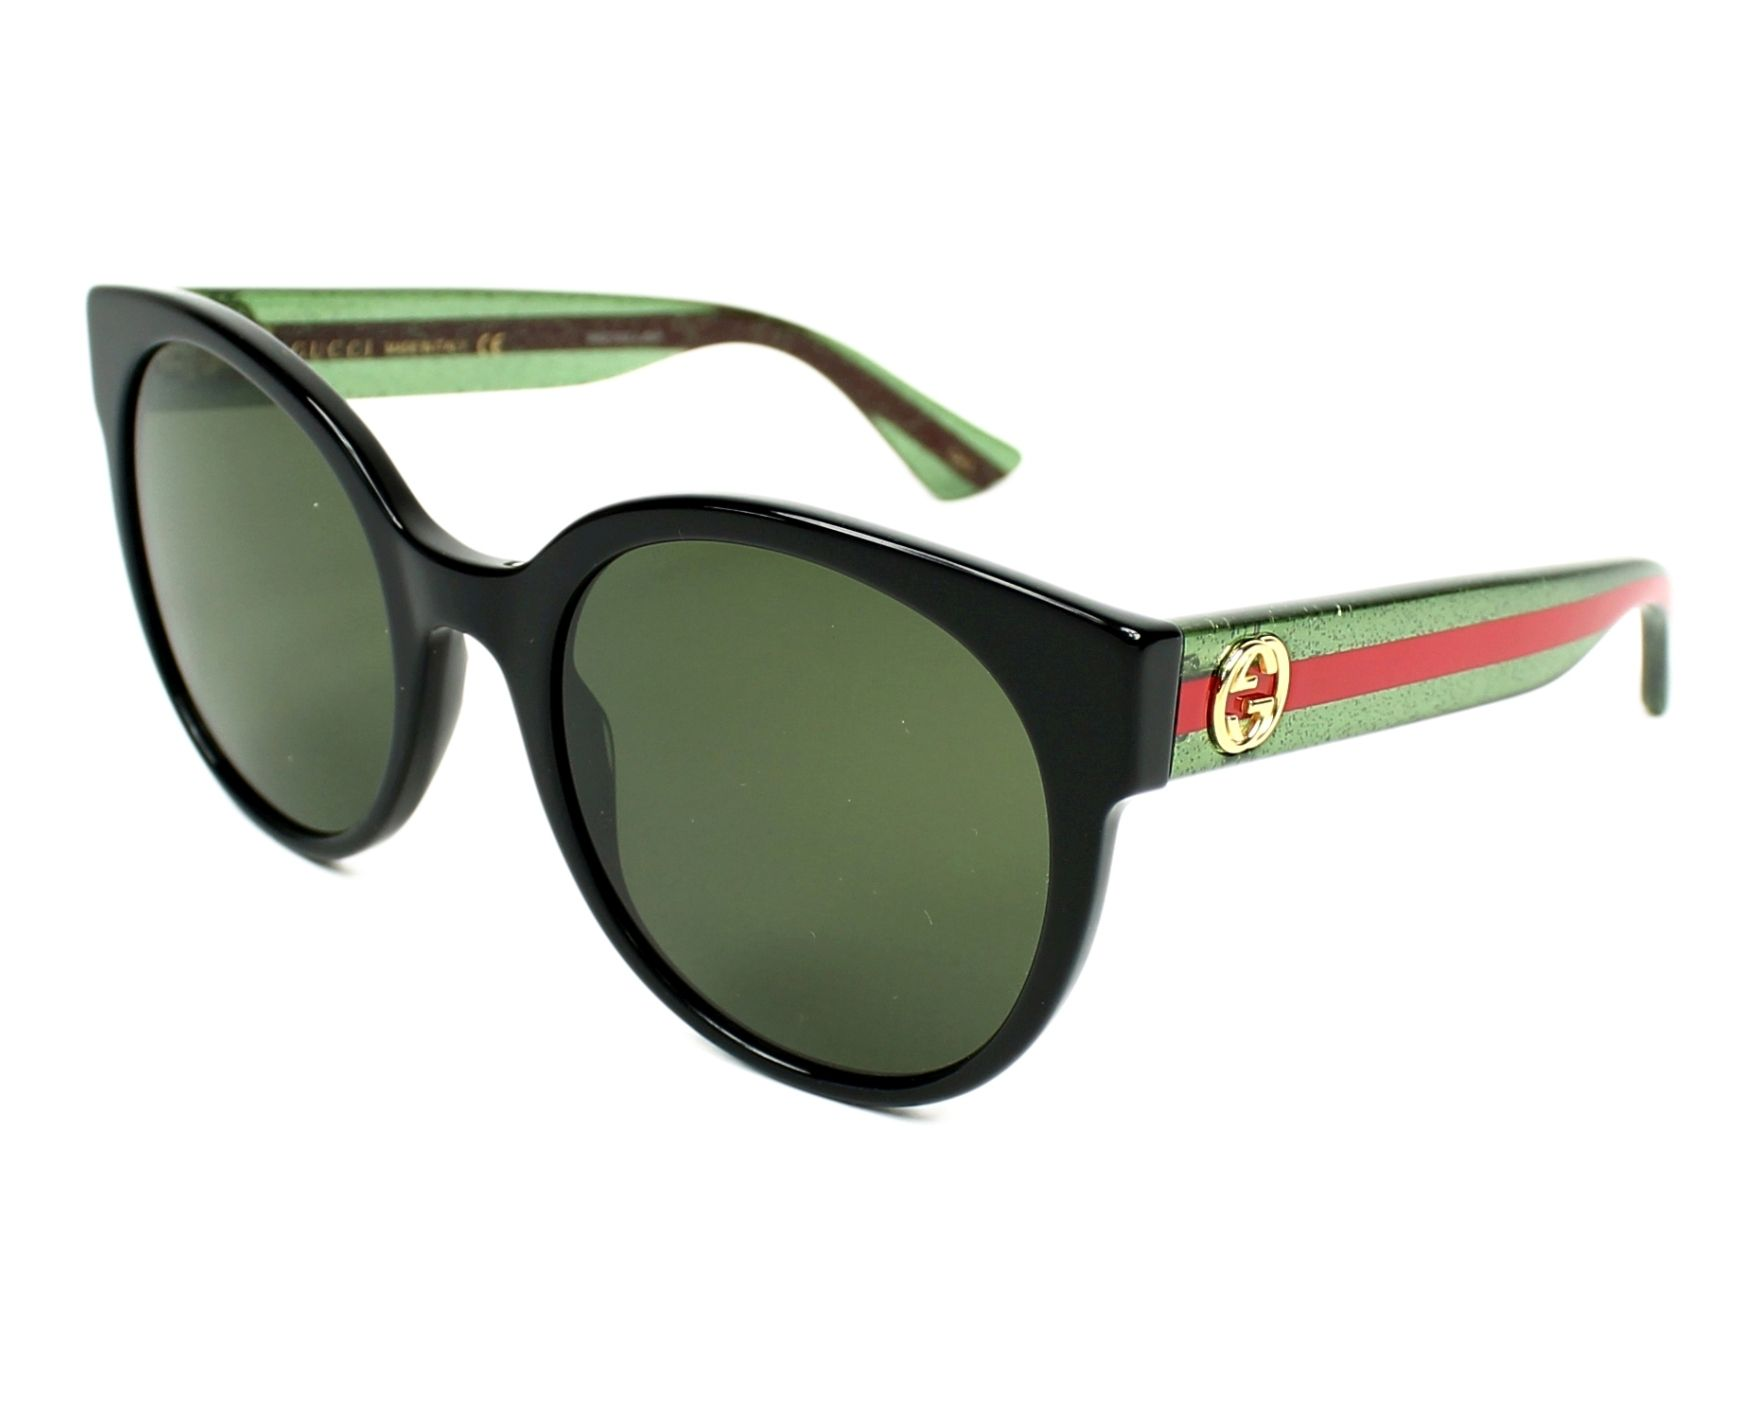 Gucci Sunglasses GG-0035-S 002| Buy now and save 5%